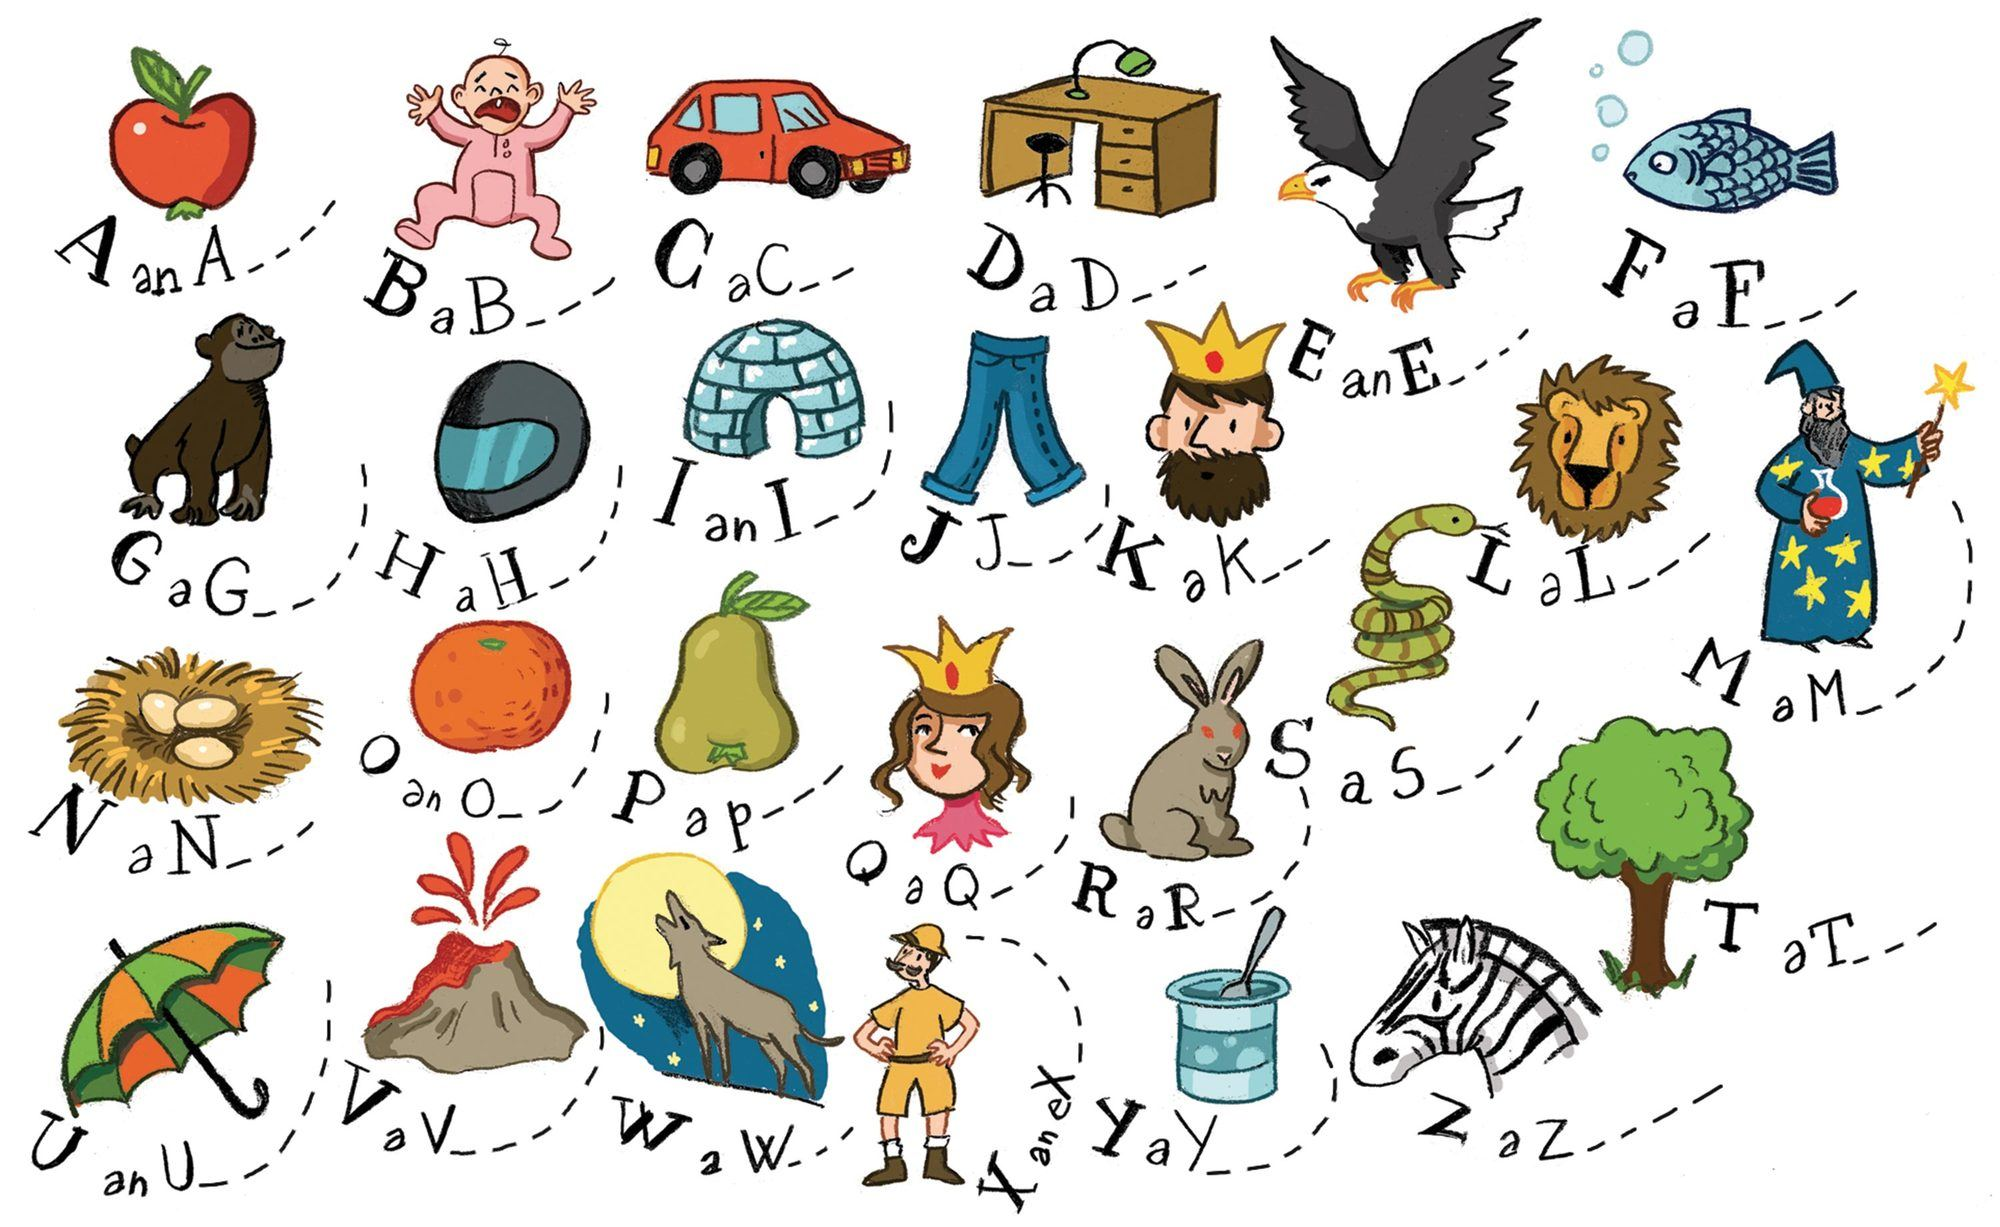 Revise your ABC